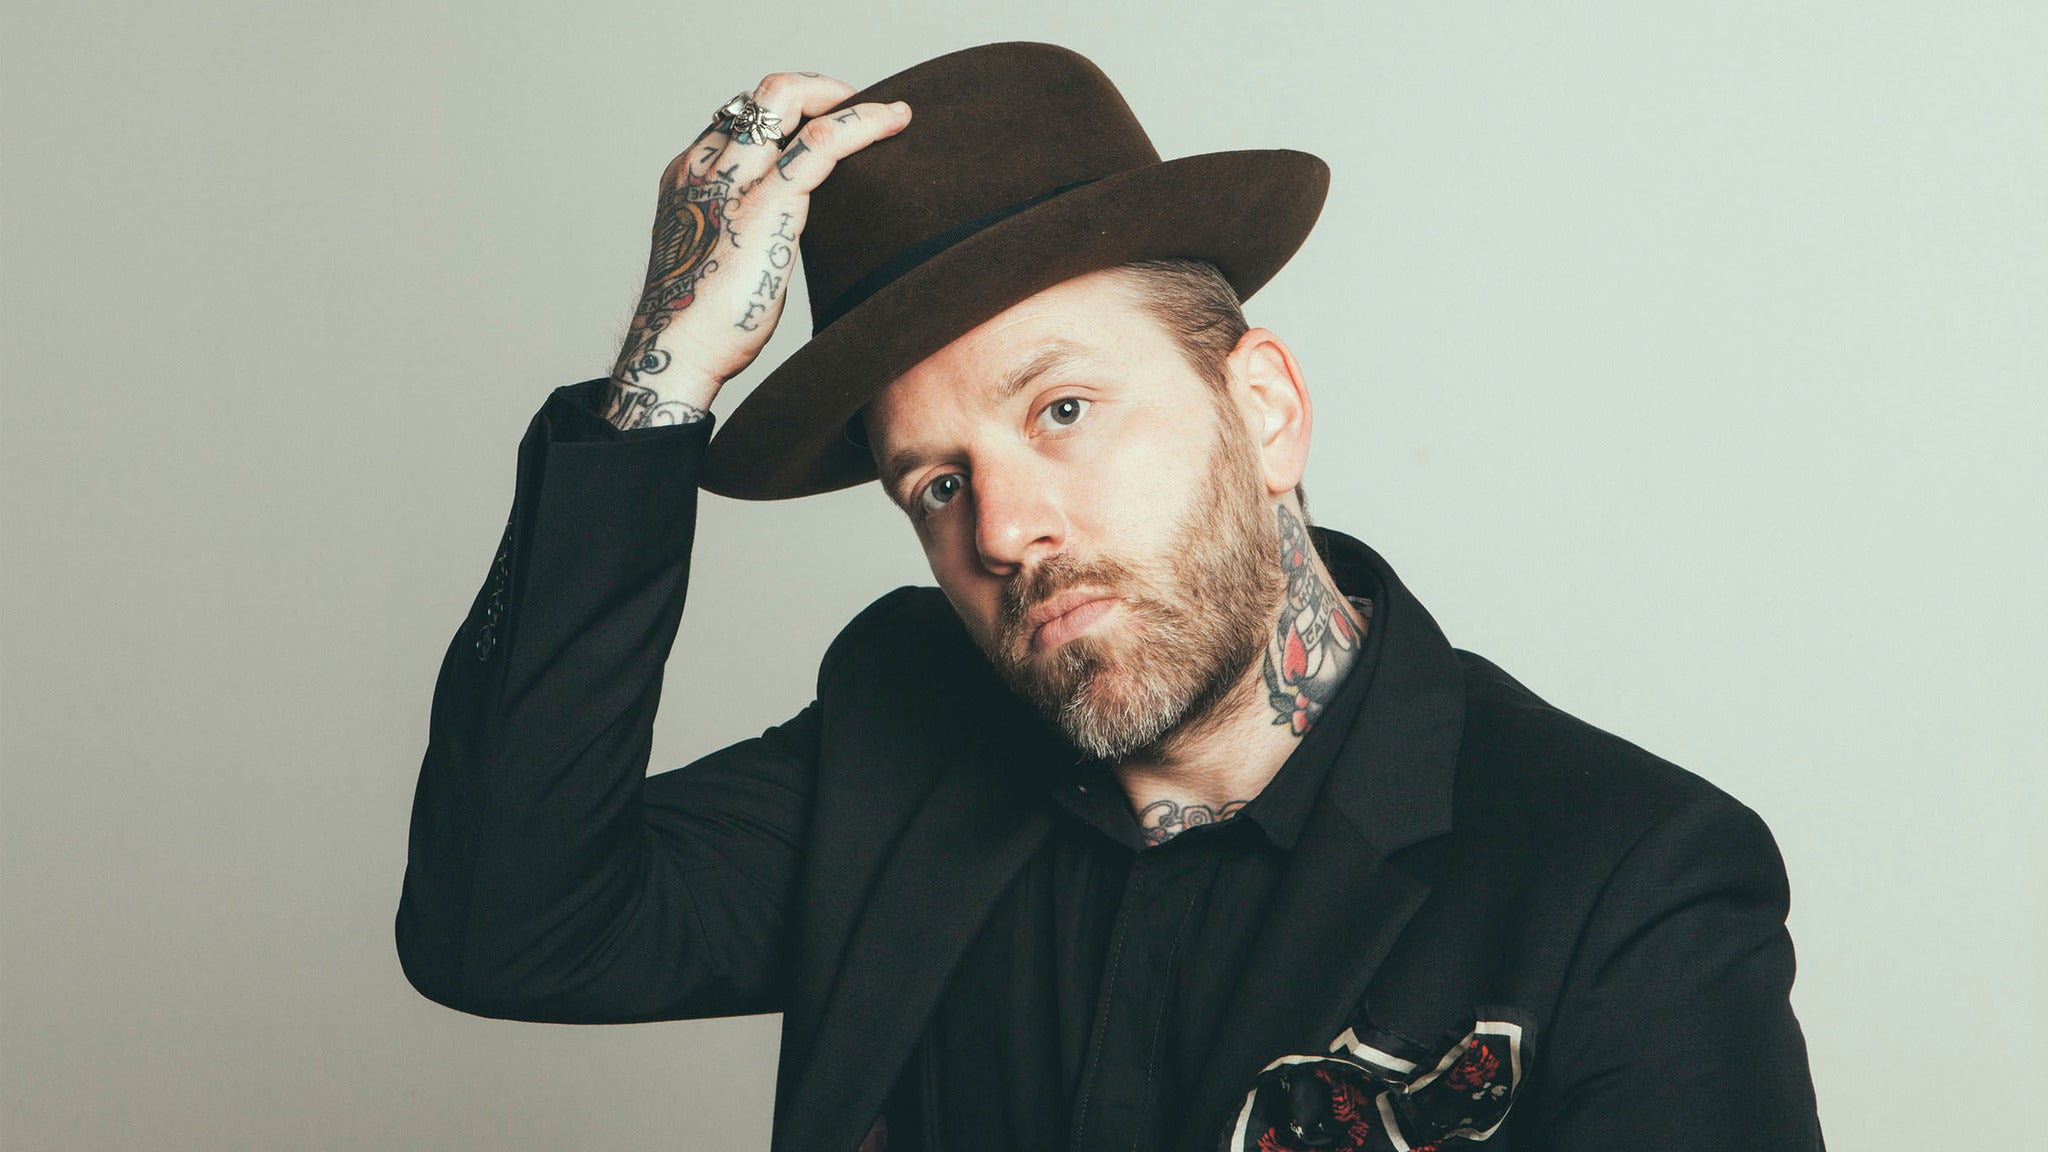 City and Colour - USA Tour 2017 at The Wiltern - Los Angeles, CA 90010